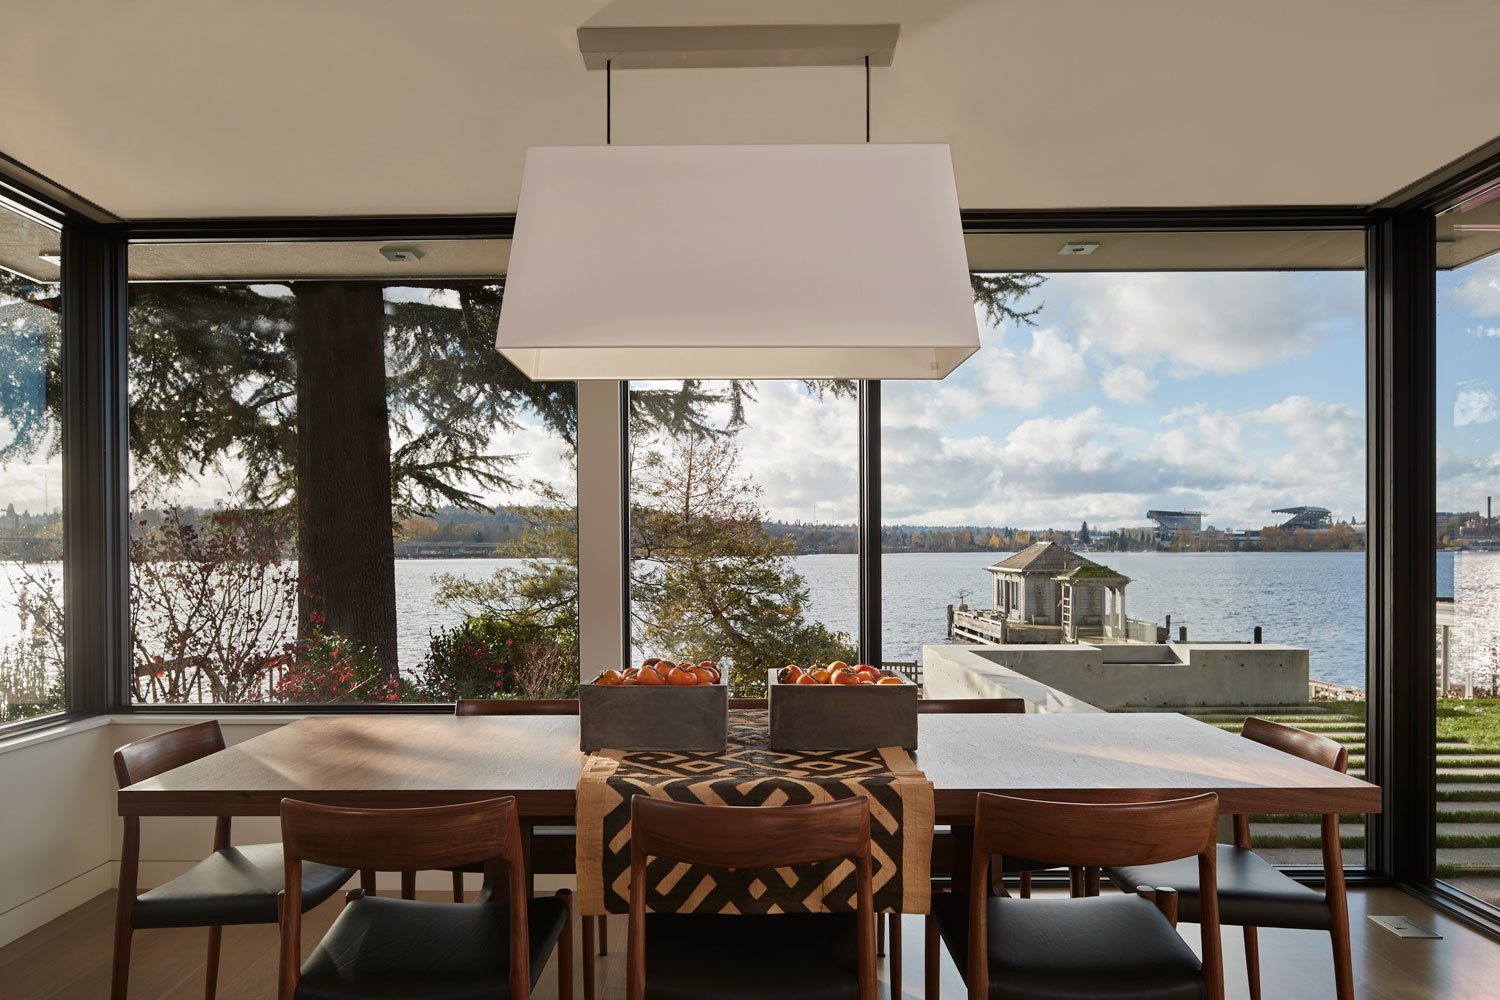 Dining Room, Table, Chair, Pendant Lighting, and Light Hardwood Floor  Union Bay Residence by NB Design Group